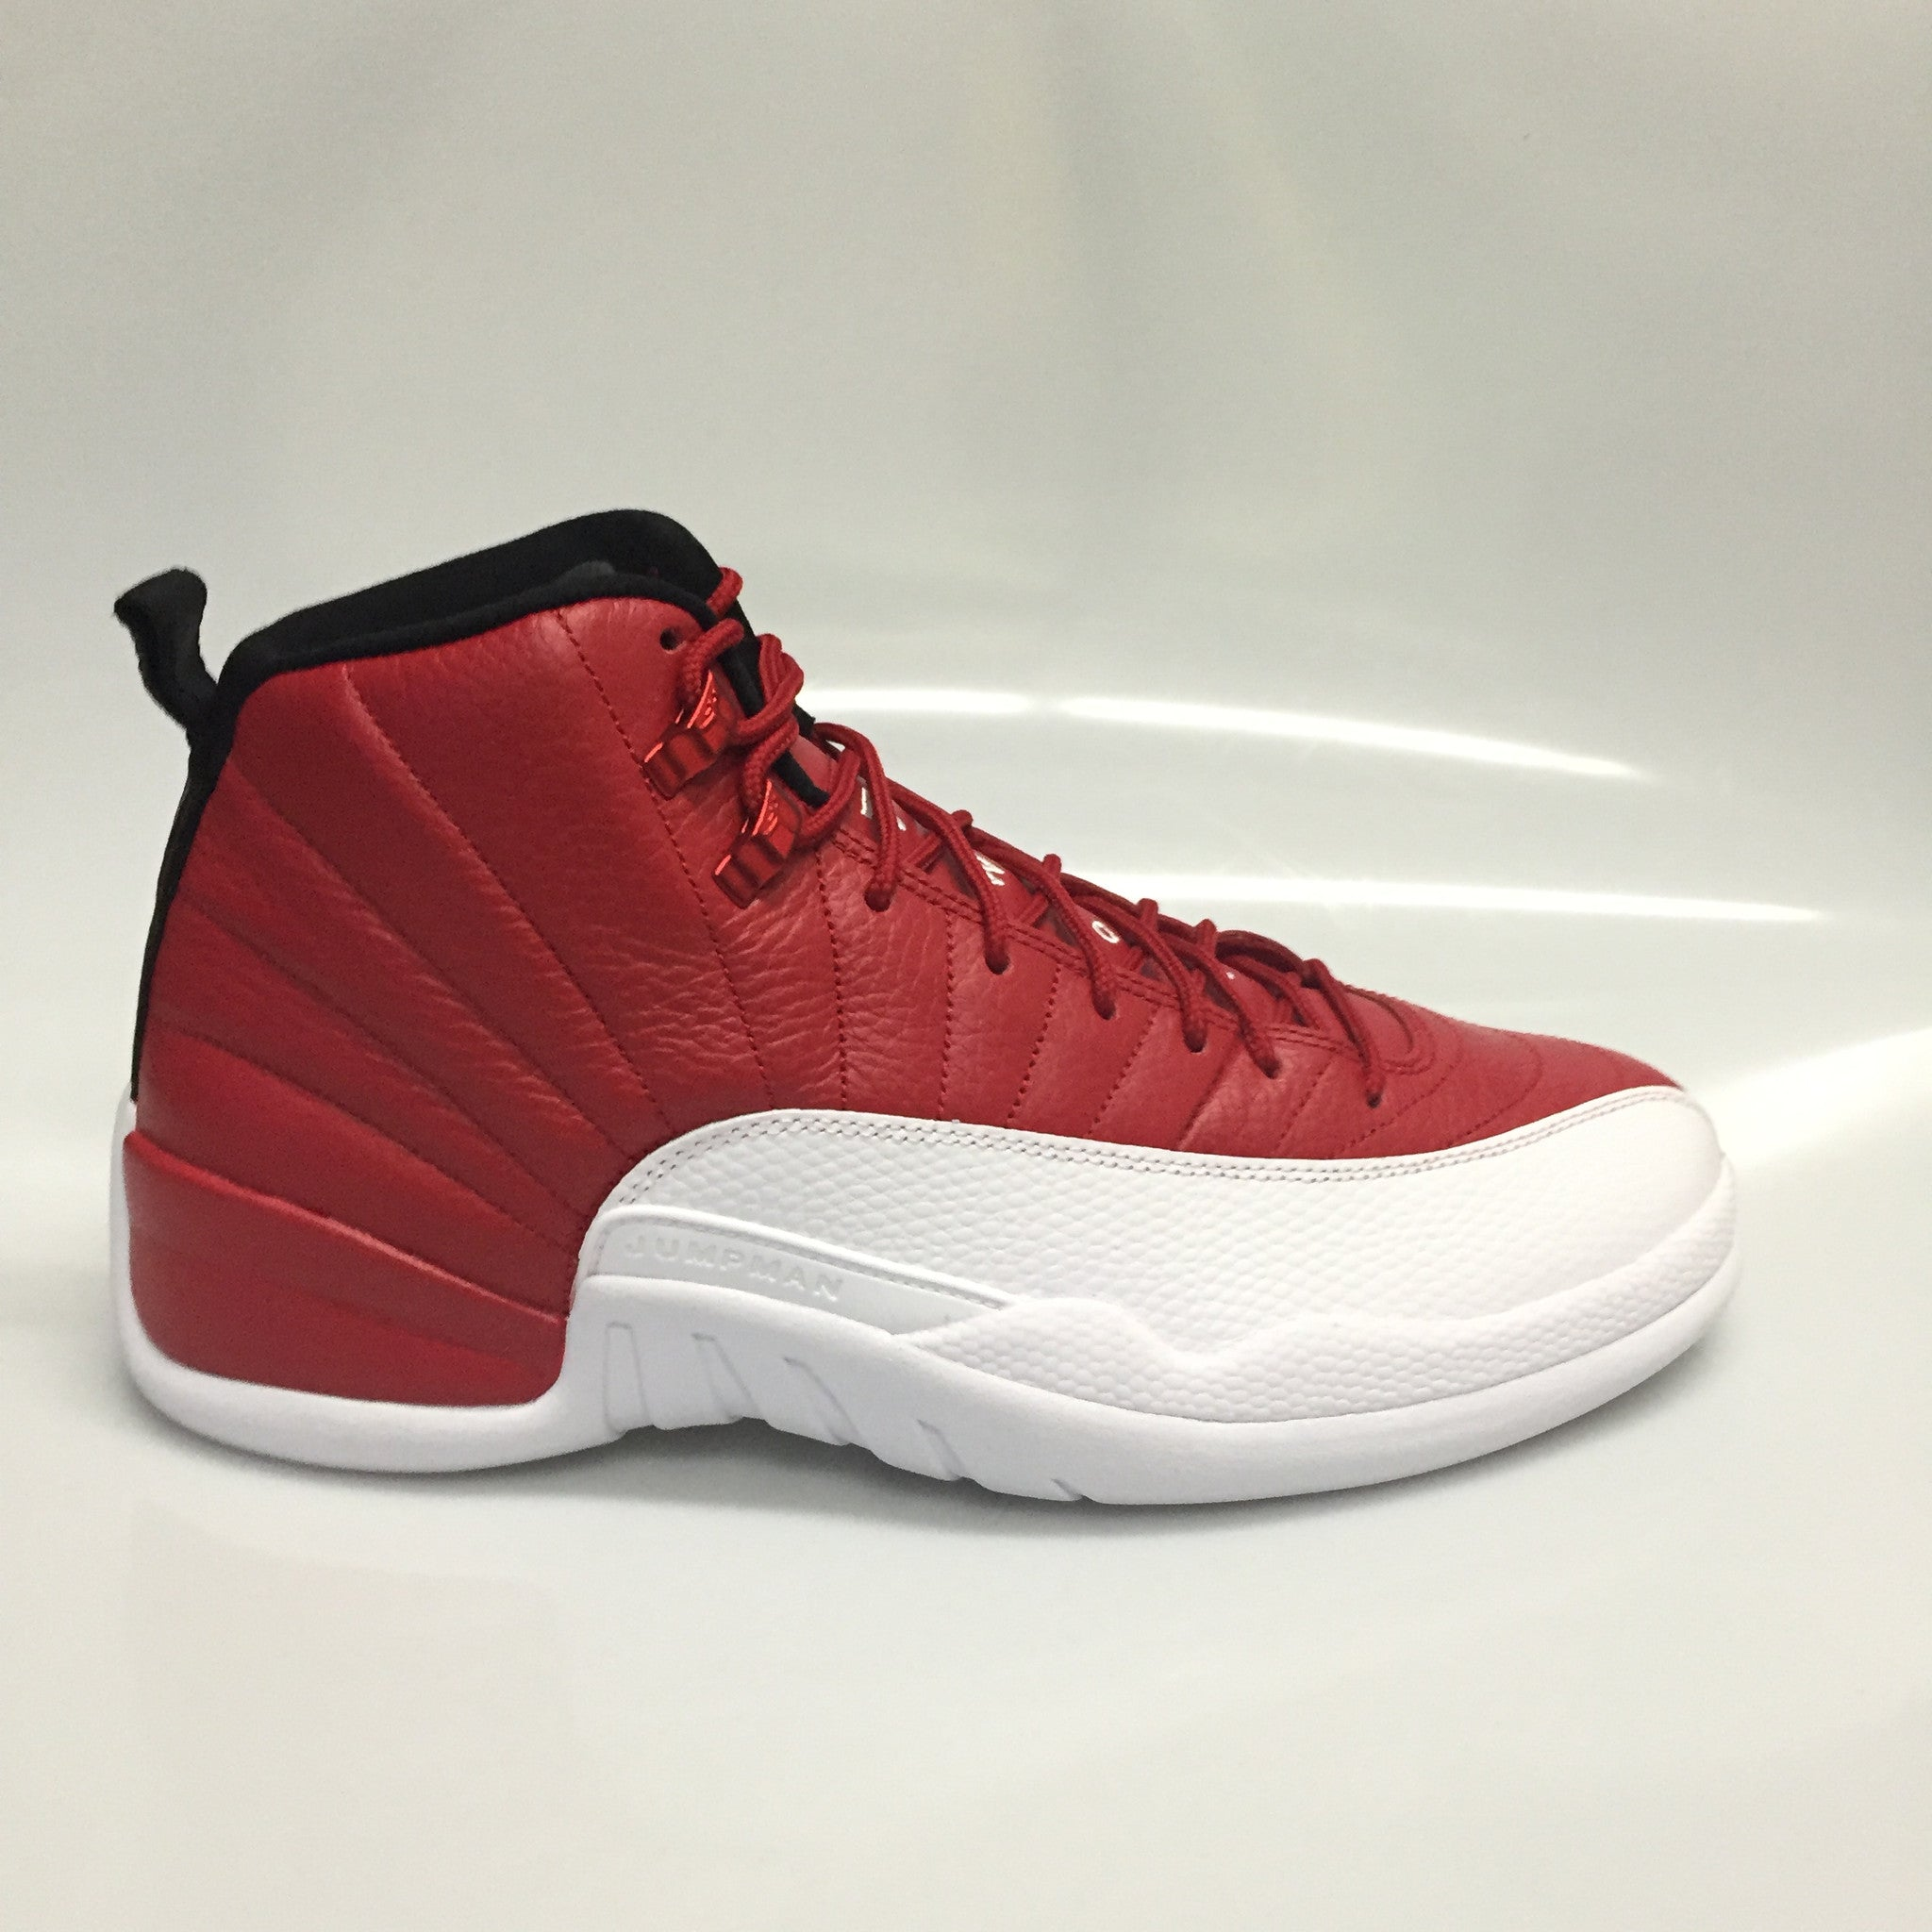 "Air Jordan 12 ""Alternate"" Size 8.5/11 DS"